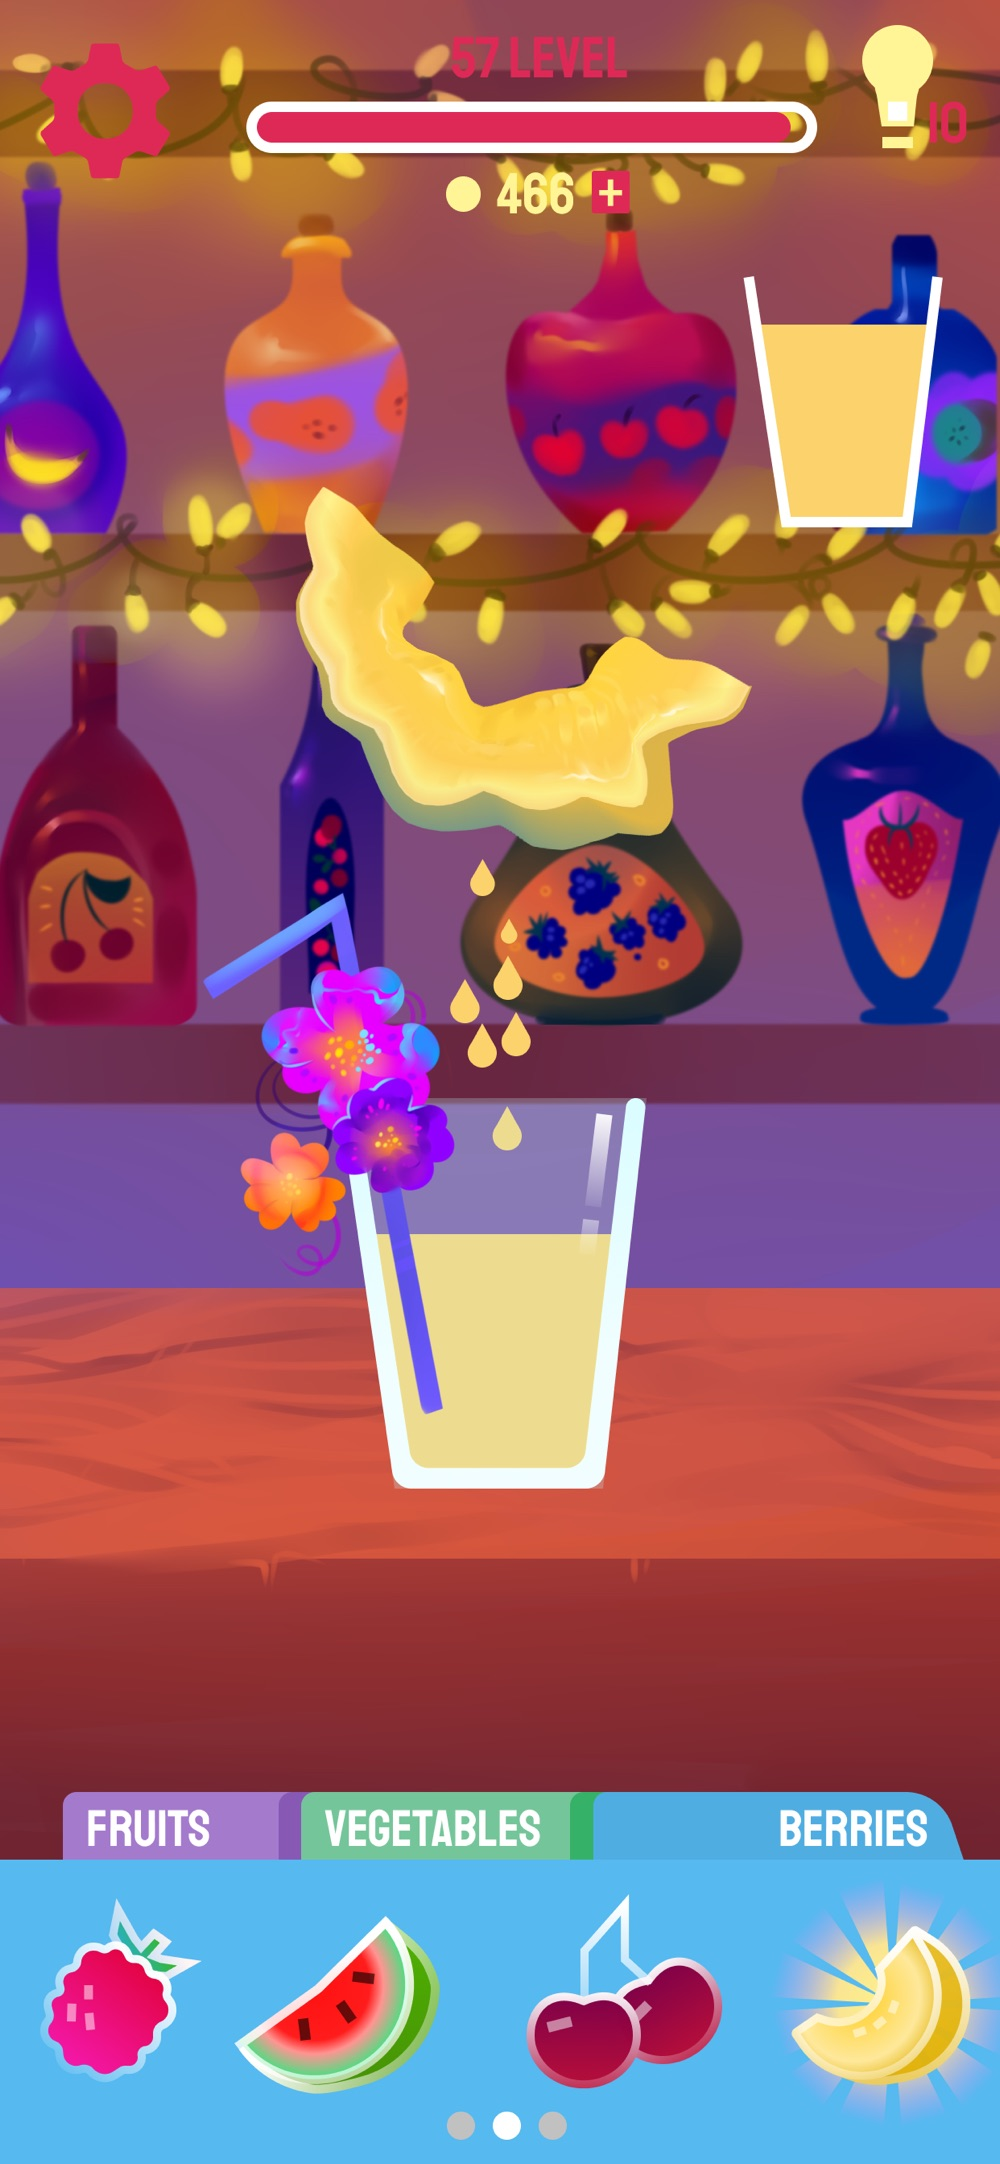 Smoothie king: mixed drinks Cheat Codes